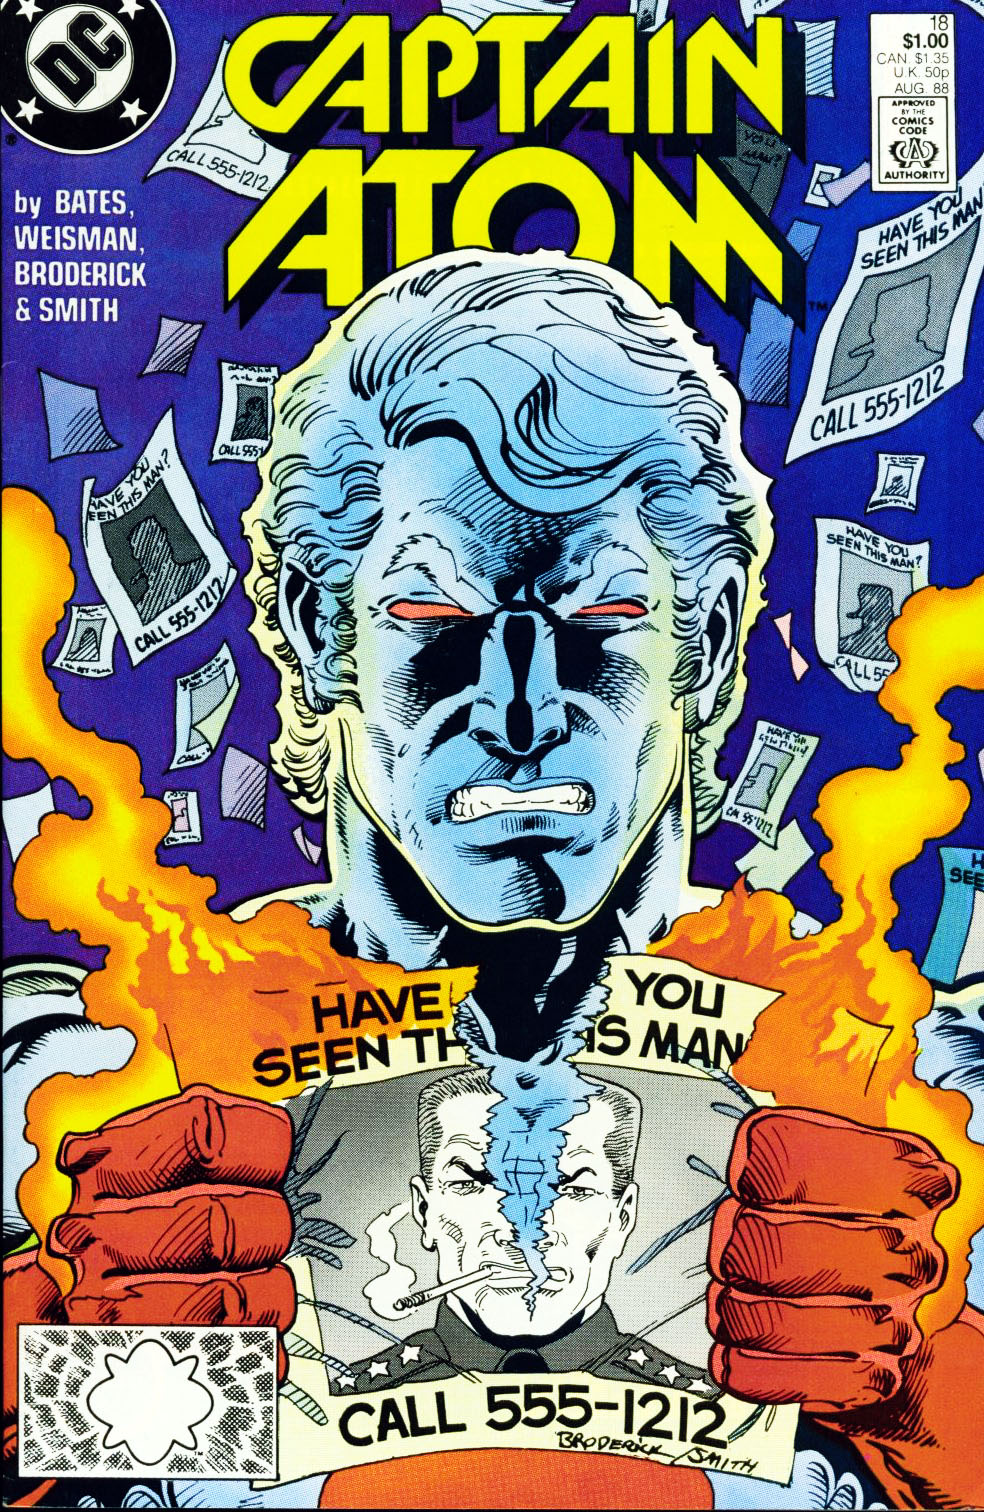 Captain Atom (1987) #18, cover penciled by Pat Broderick & inked by Bob Smith.